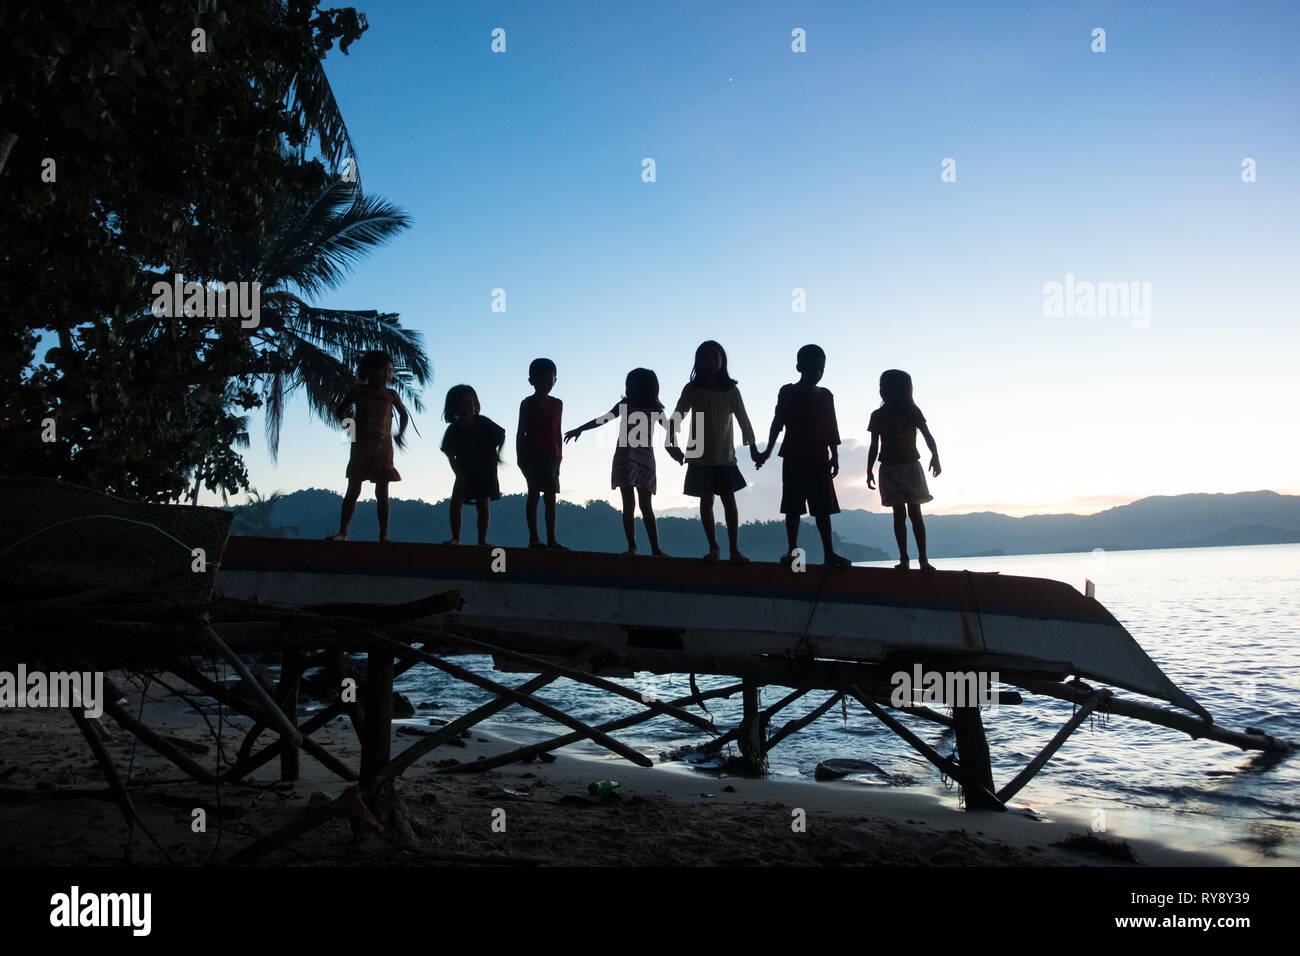 Filipino children holding hands on a fishing boat by a sunset sea - Port Barton, Palawan - Philippines - Stock Image